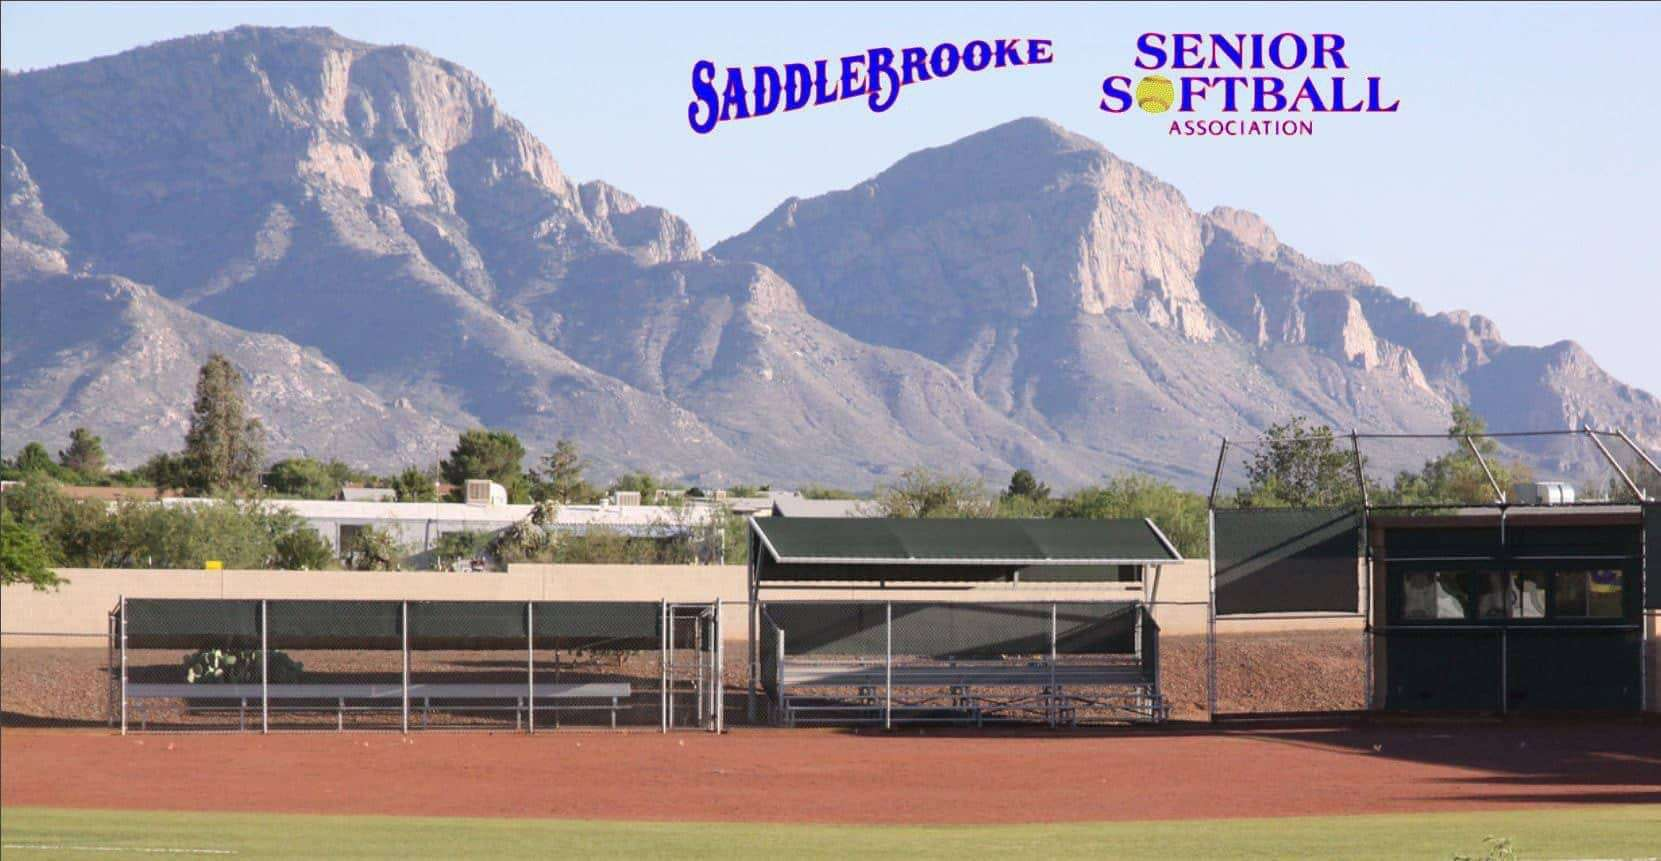 Saddlebrooke Softball